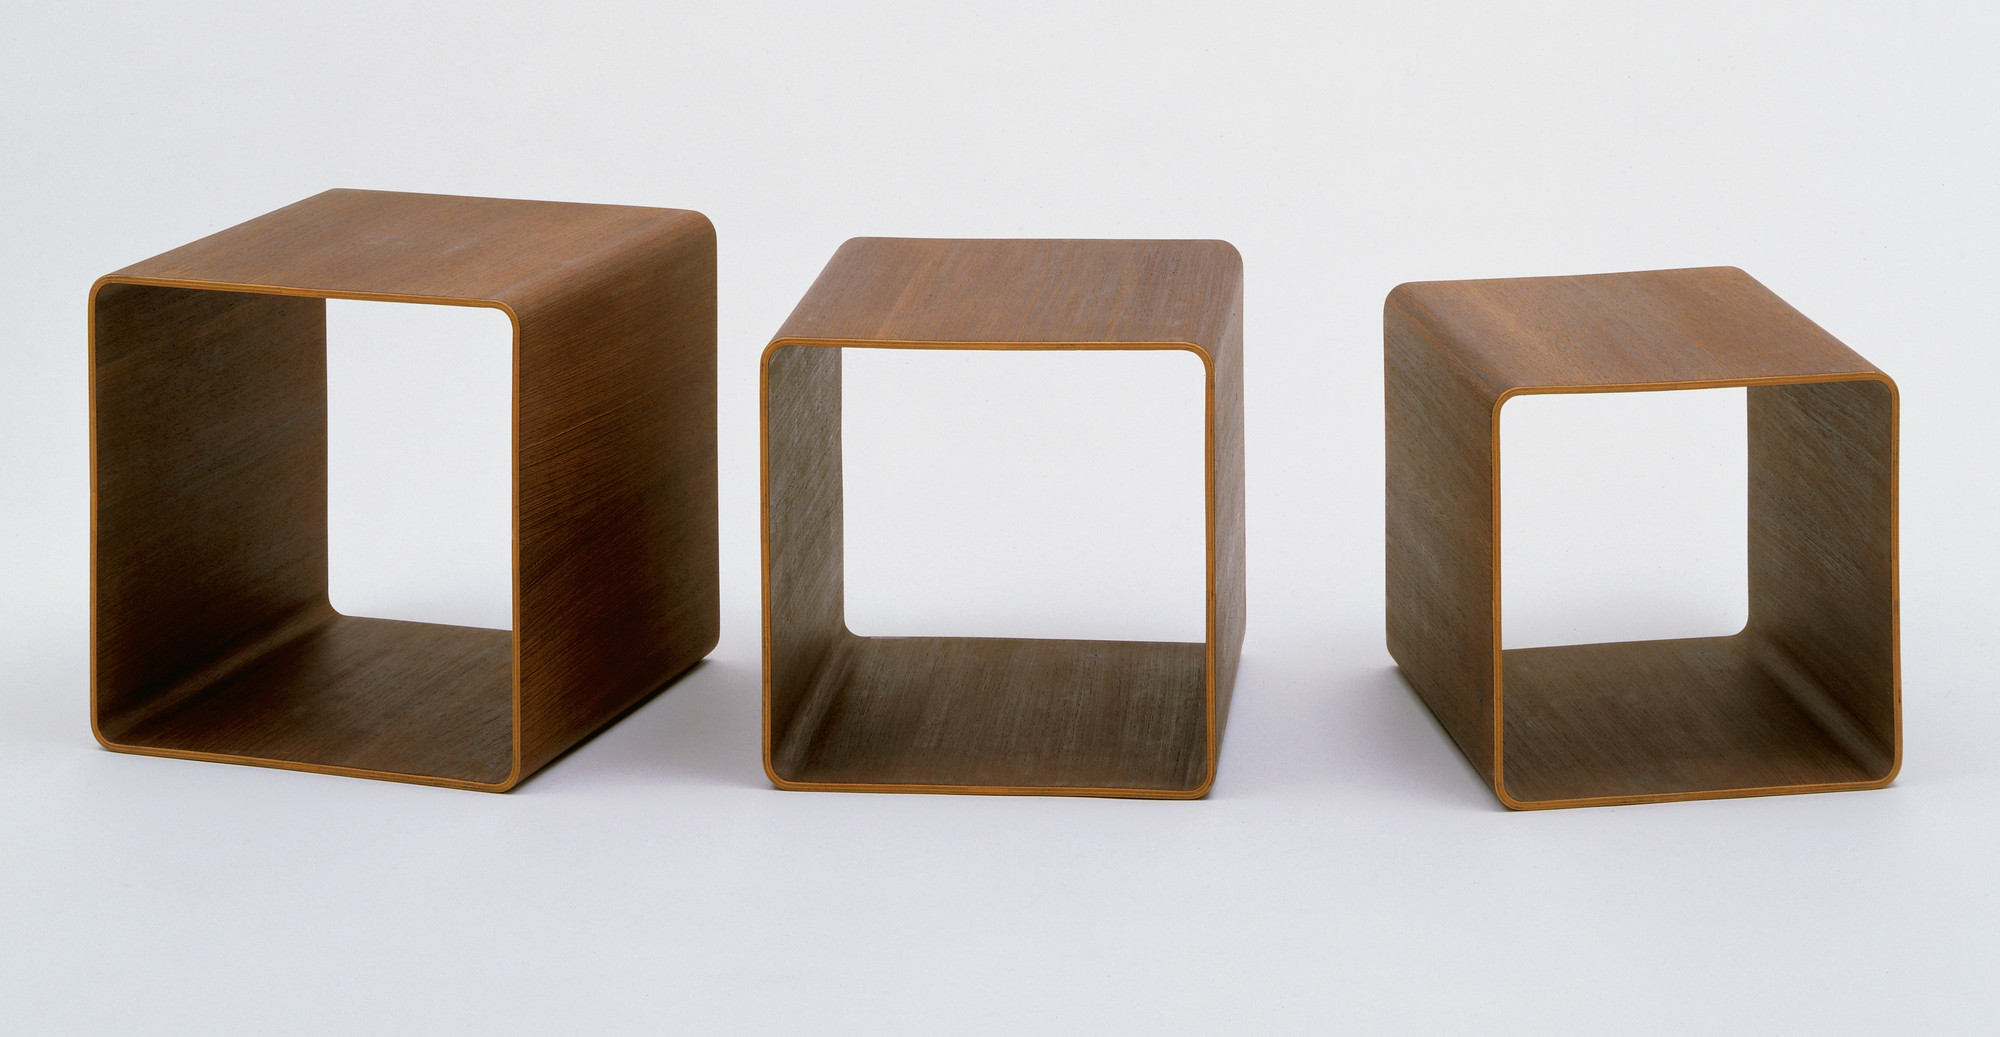 Verner Panton. Nesting Stool-Tables. 1966